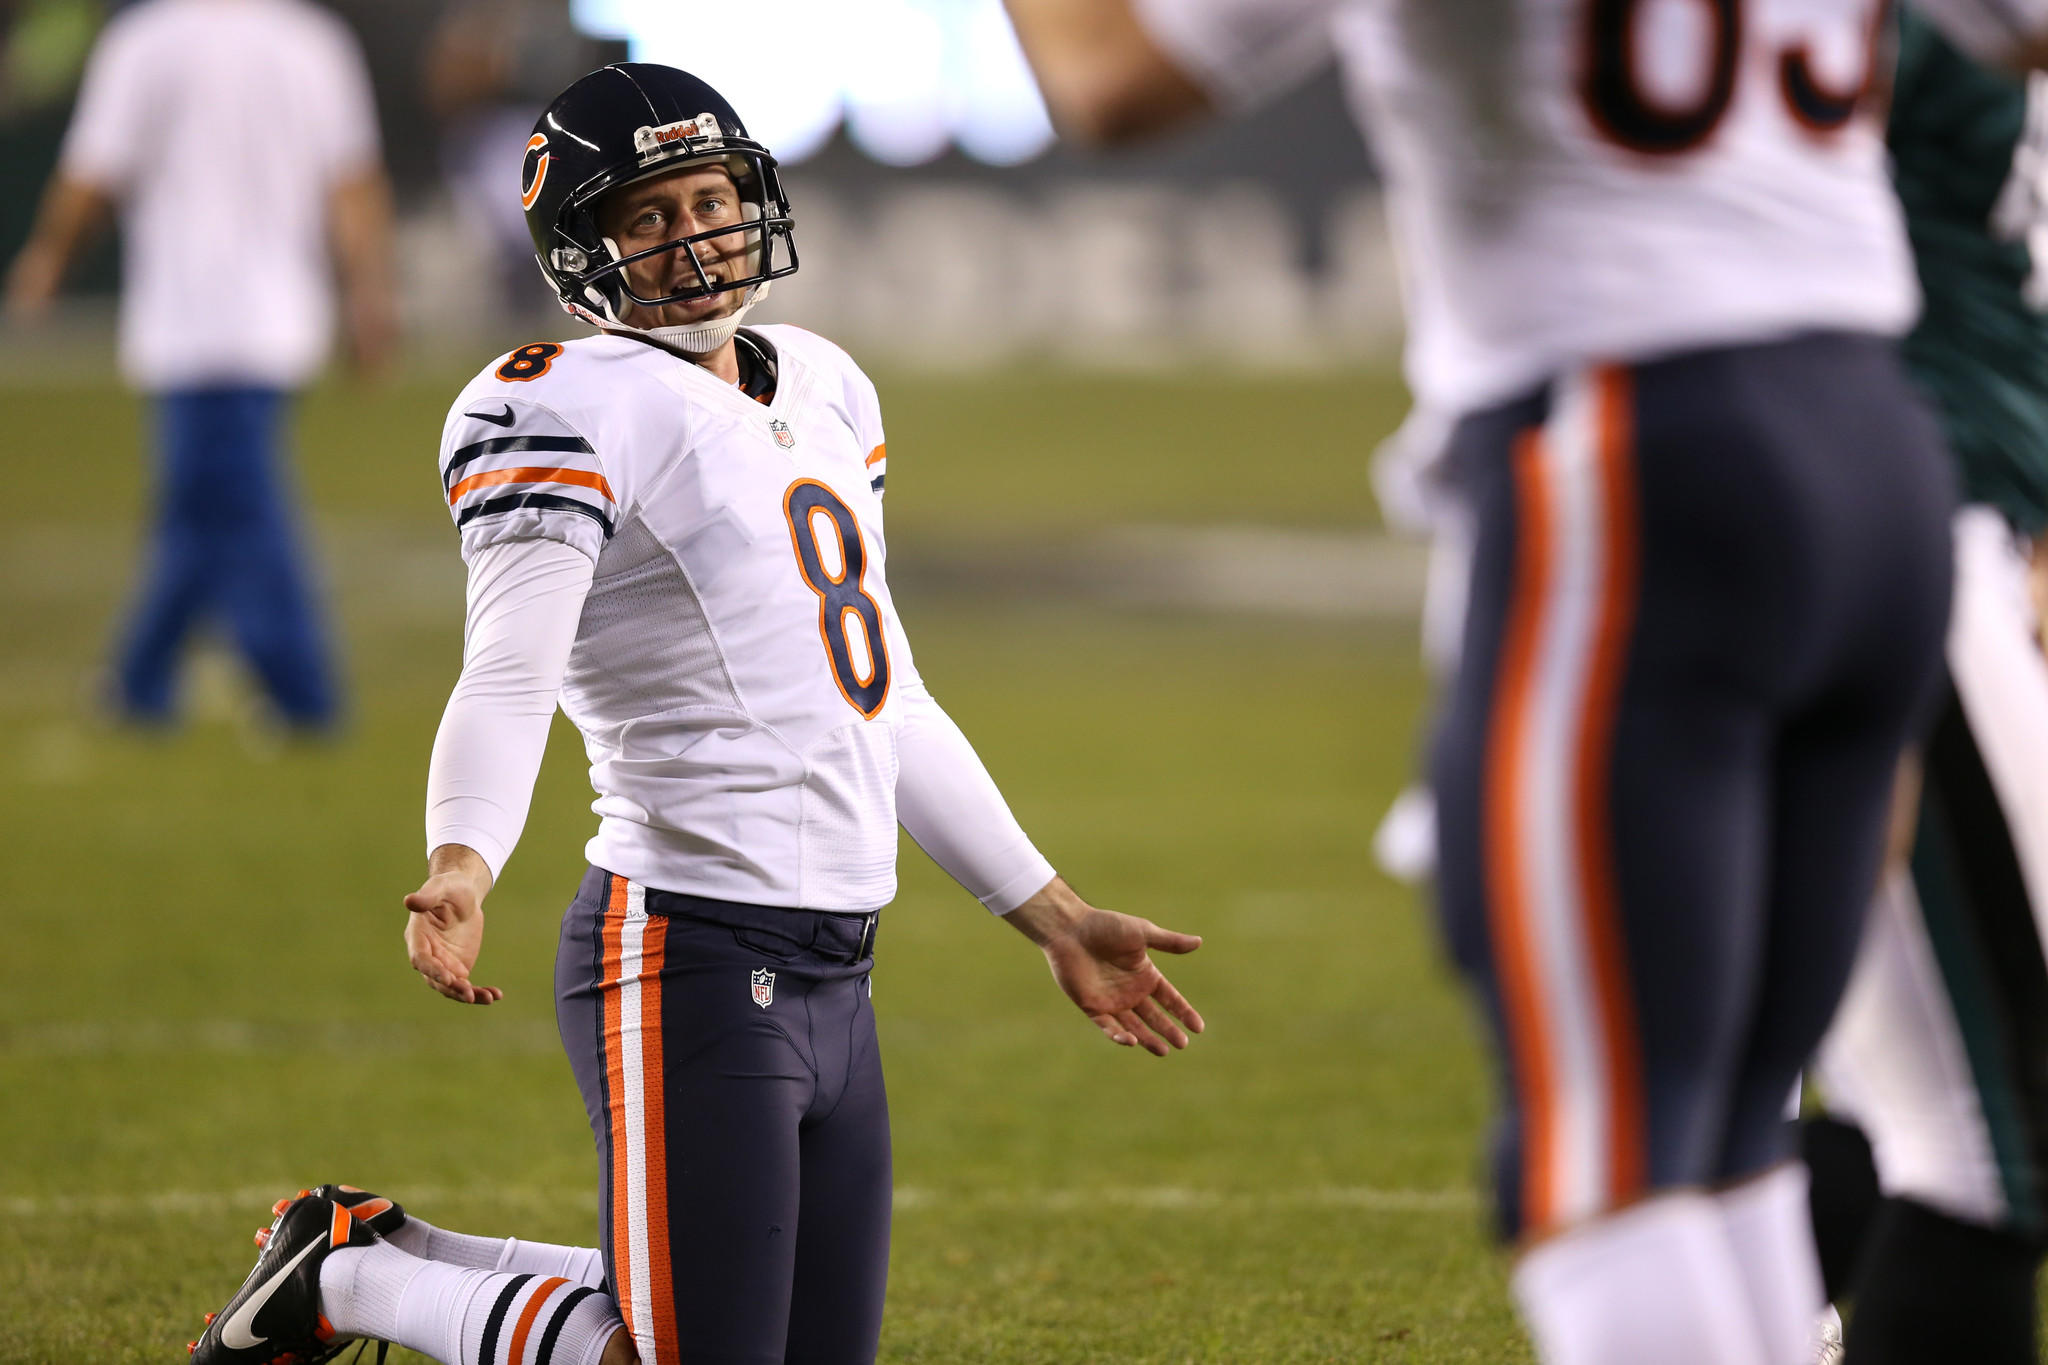 Punter Adam Podlesh warms up before the Bears' game against the Philadelphia Eagles at Lincoln Financial Field.